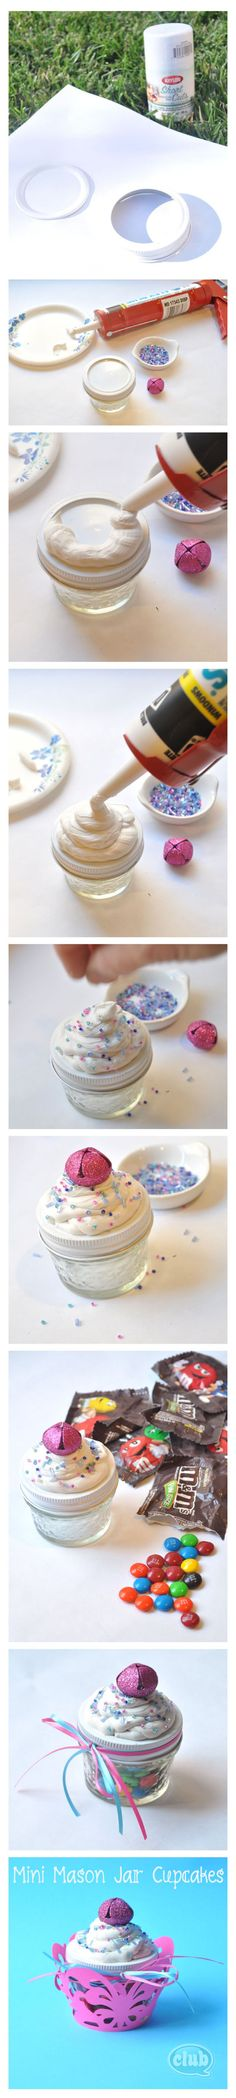 Mini Mason Jar Candy Cupcakes DIY craft using caulk and beads. | Club ChicaCircle